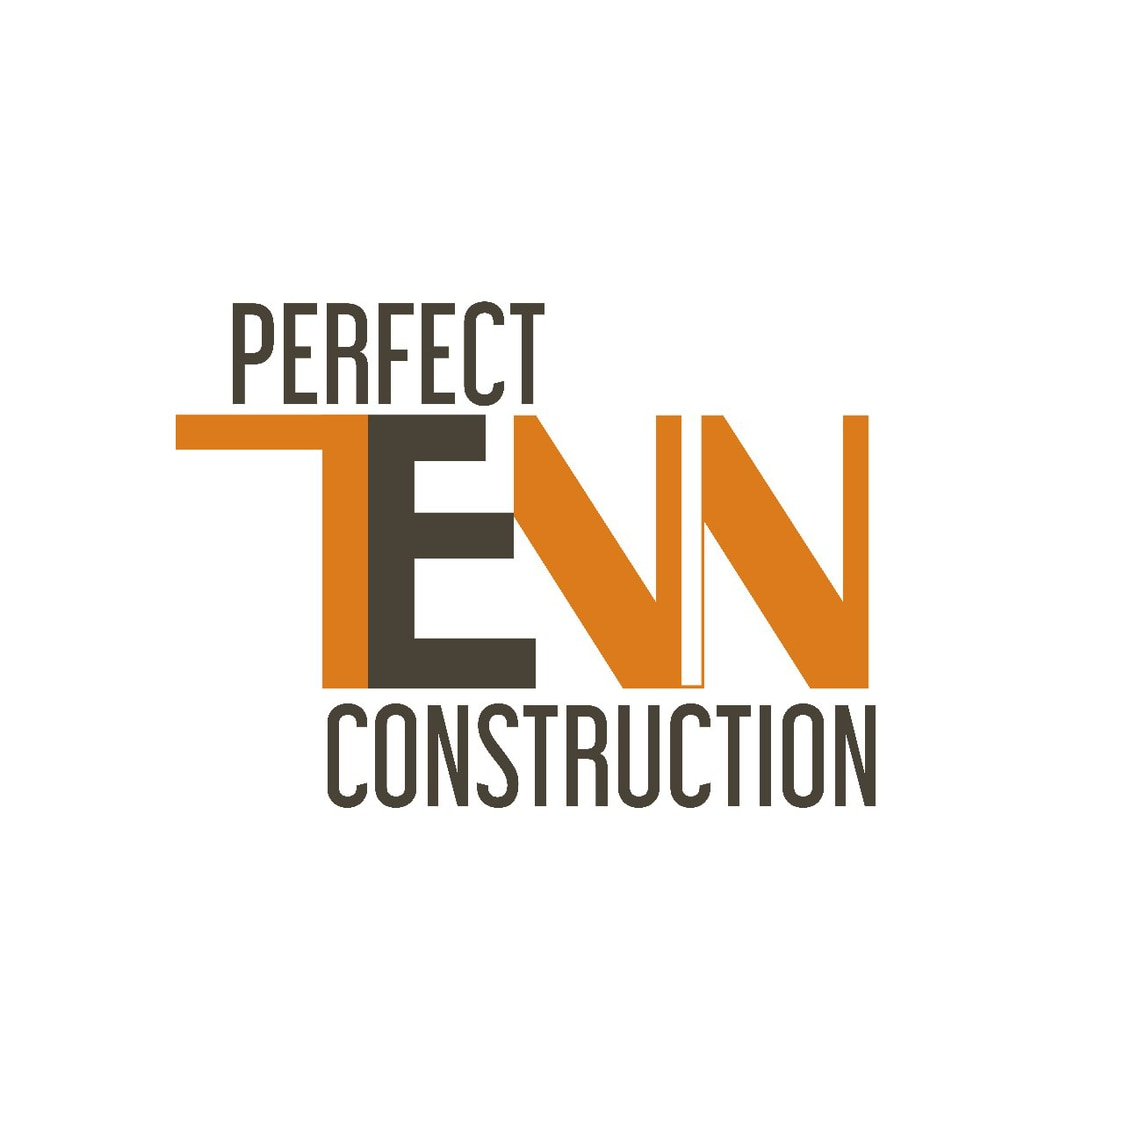 Perfect Tenn Construction